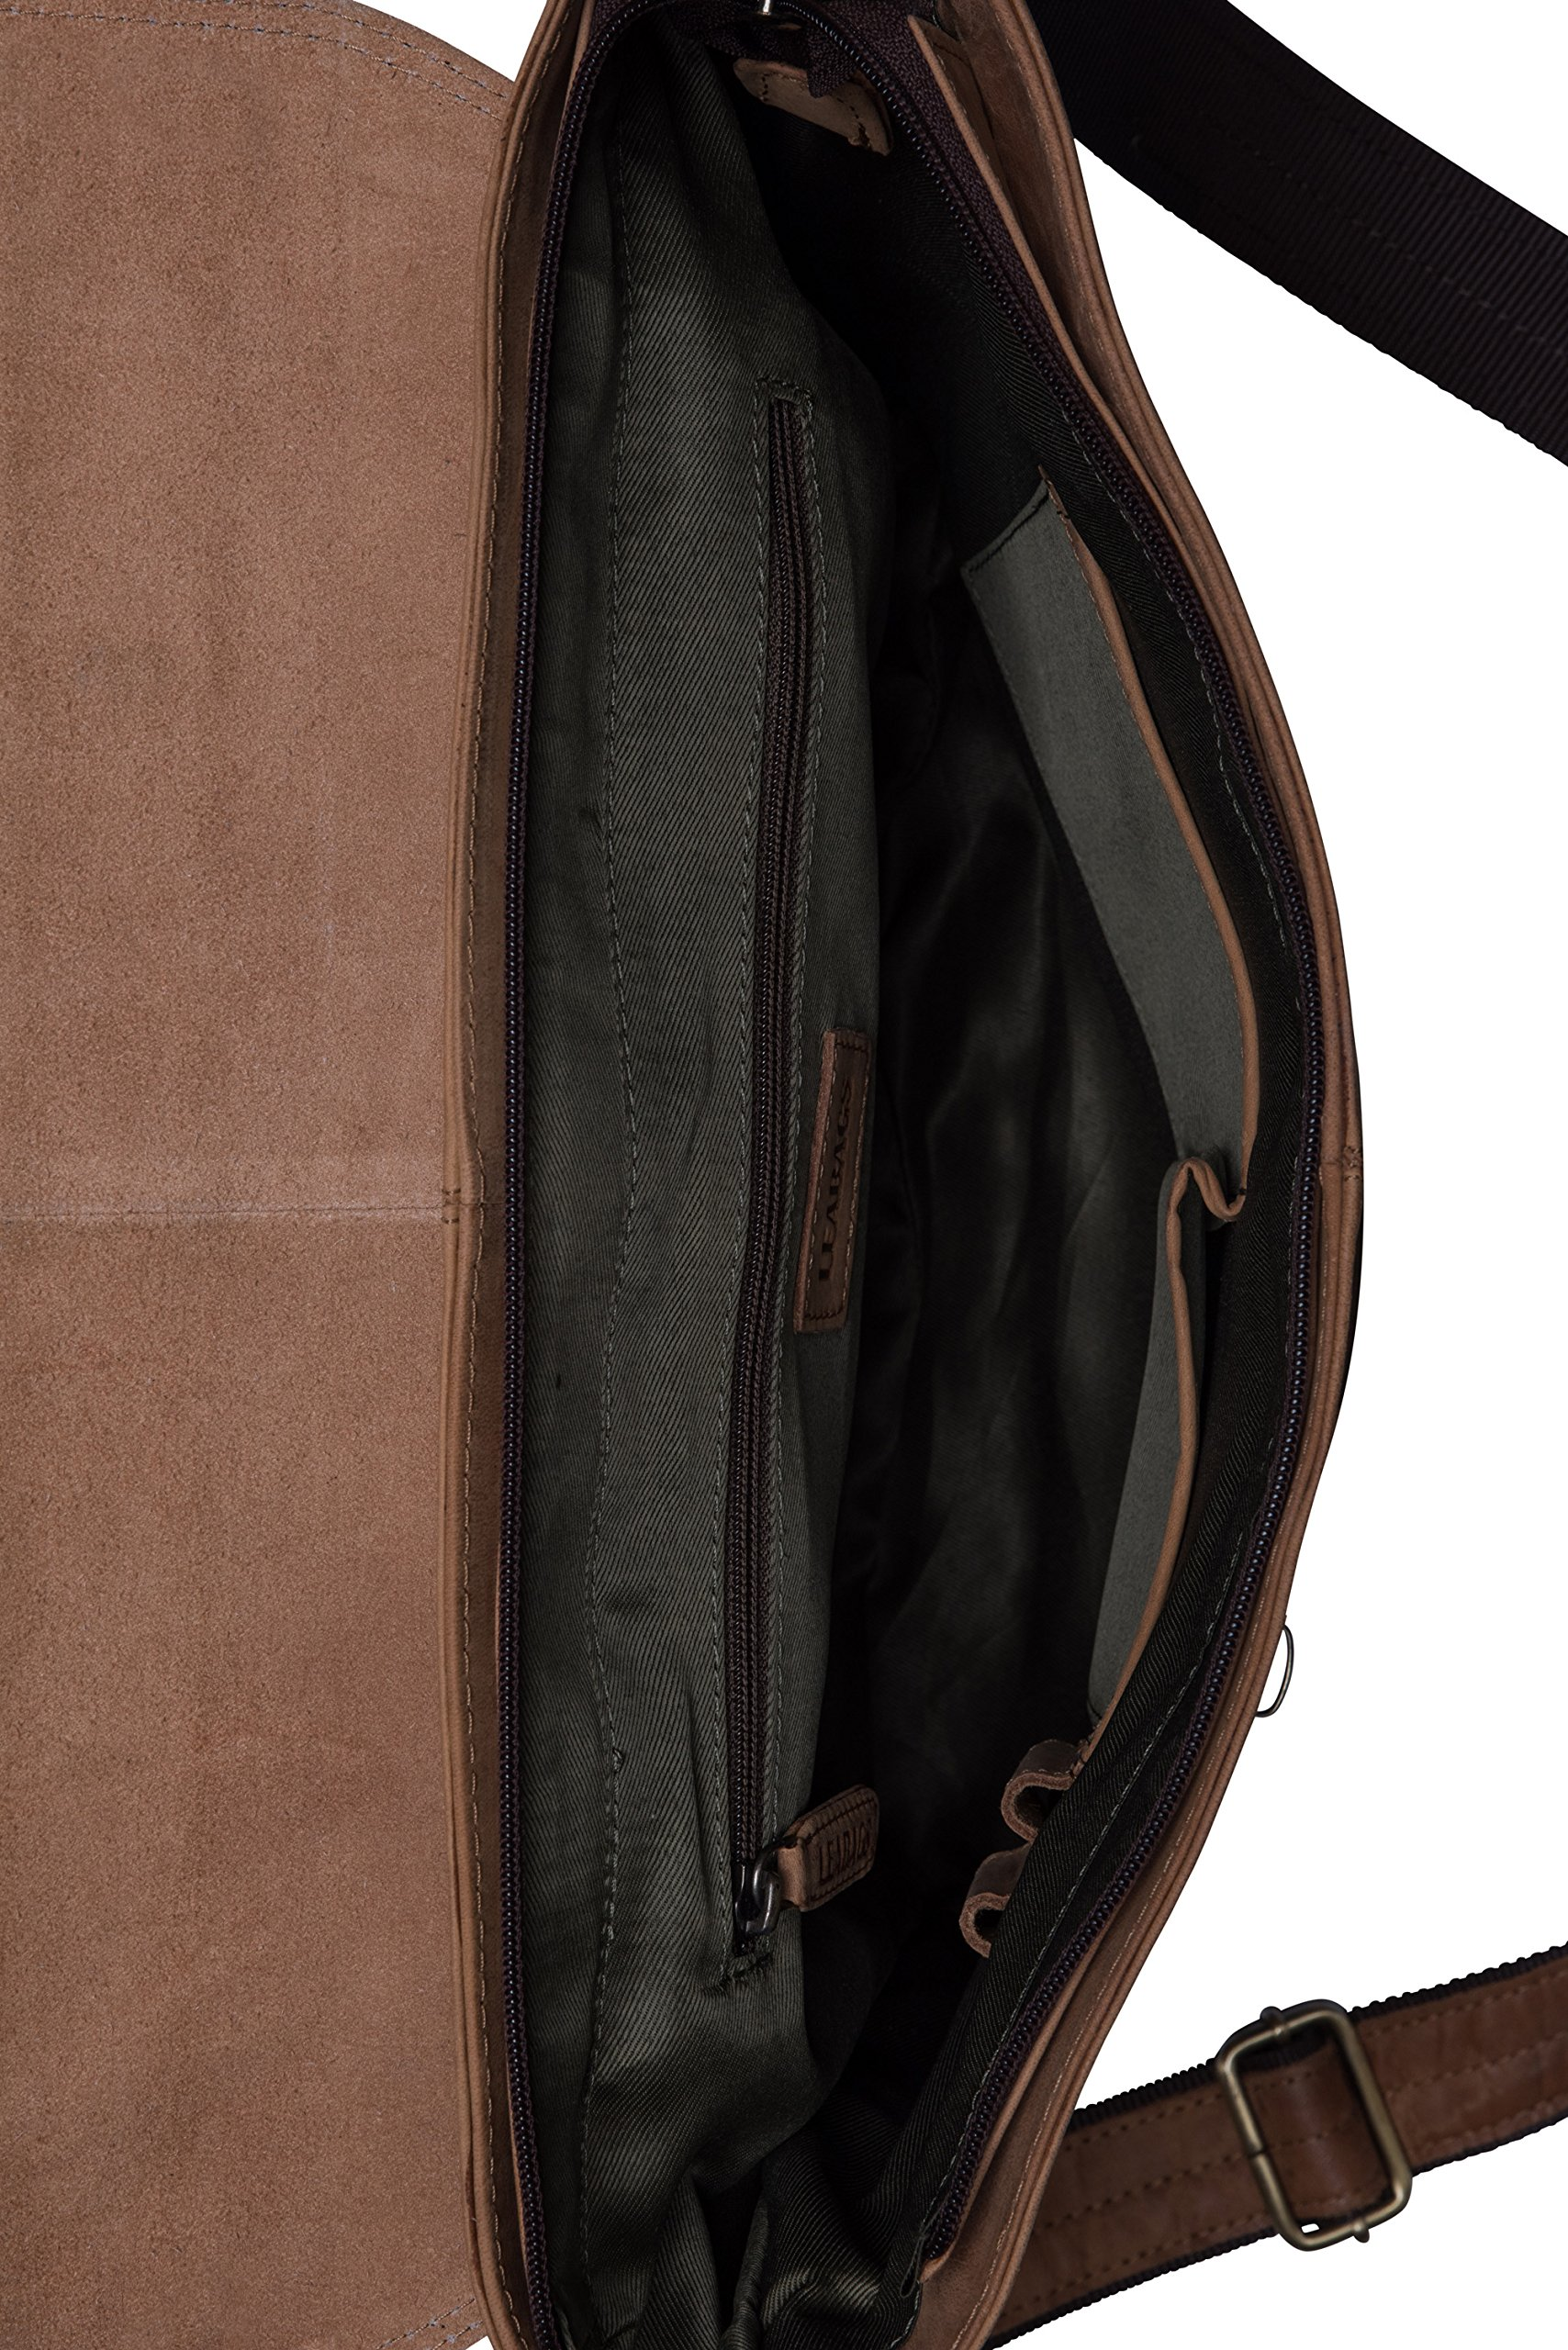 LEABAGS Liverpool genuine buffalo leather briefcase in vintage style - Brown by LEABAGS (Image #5)